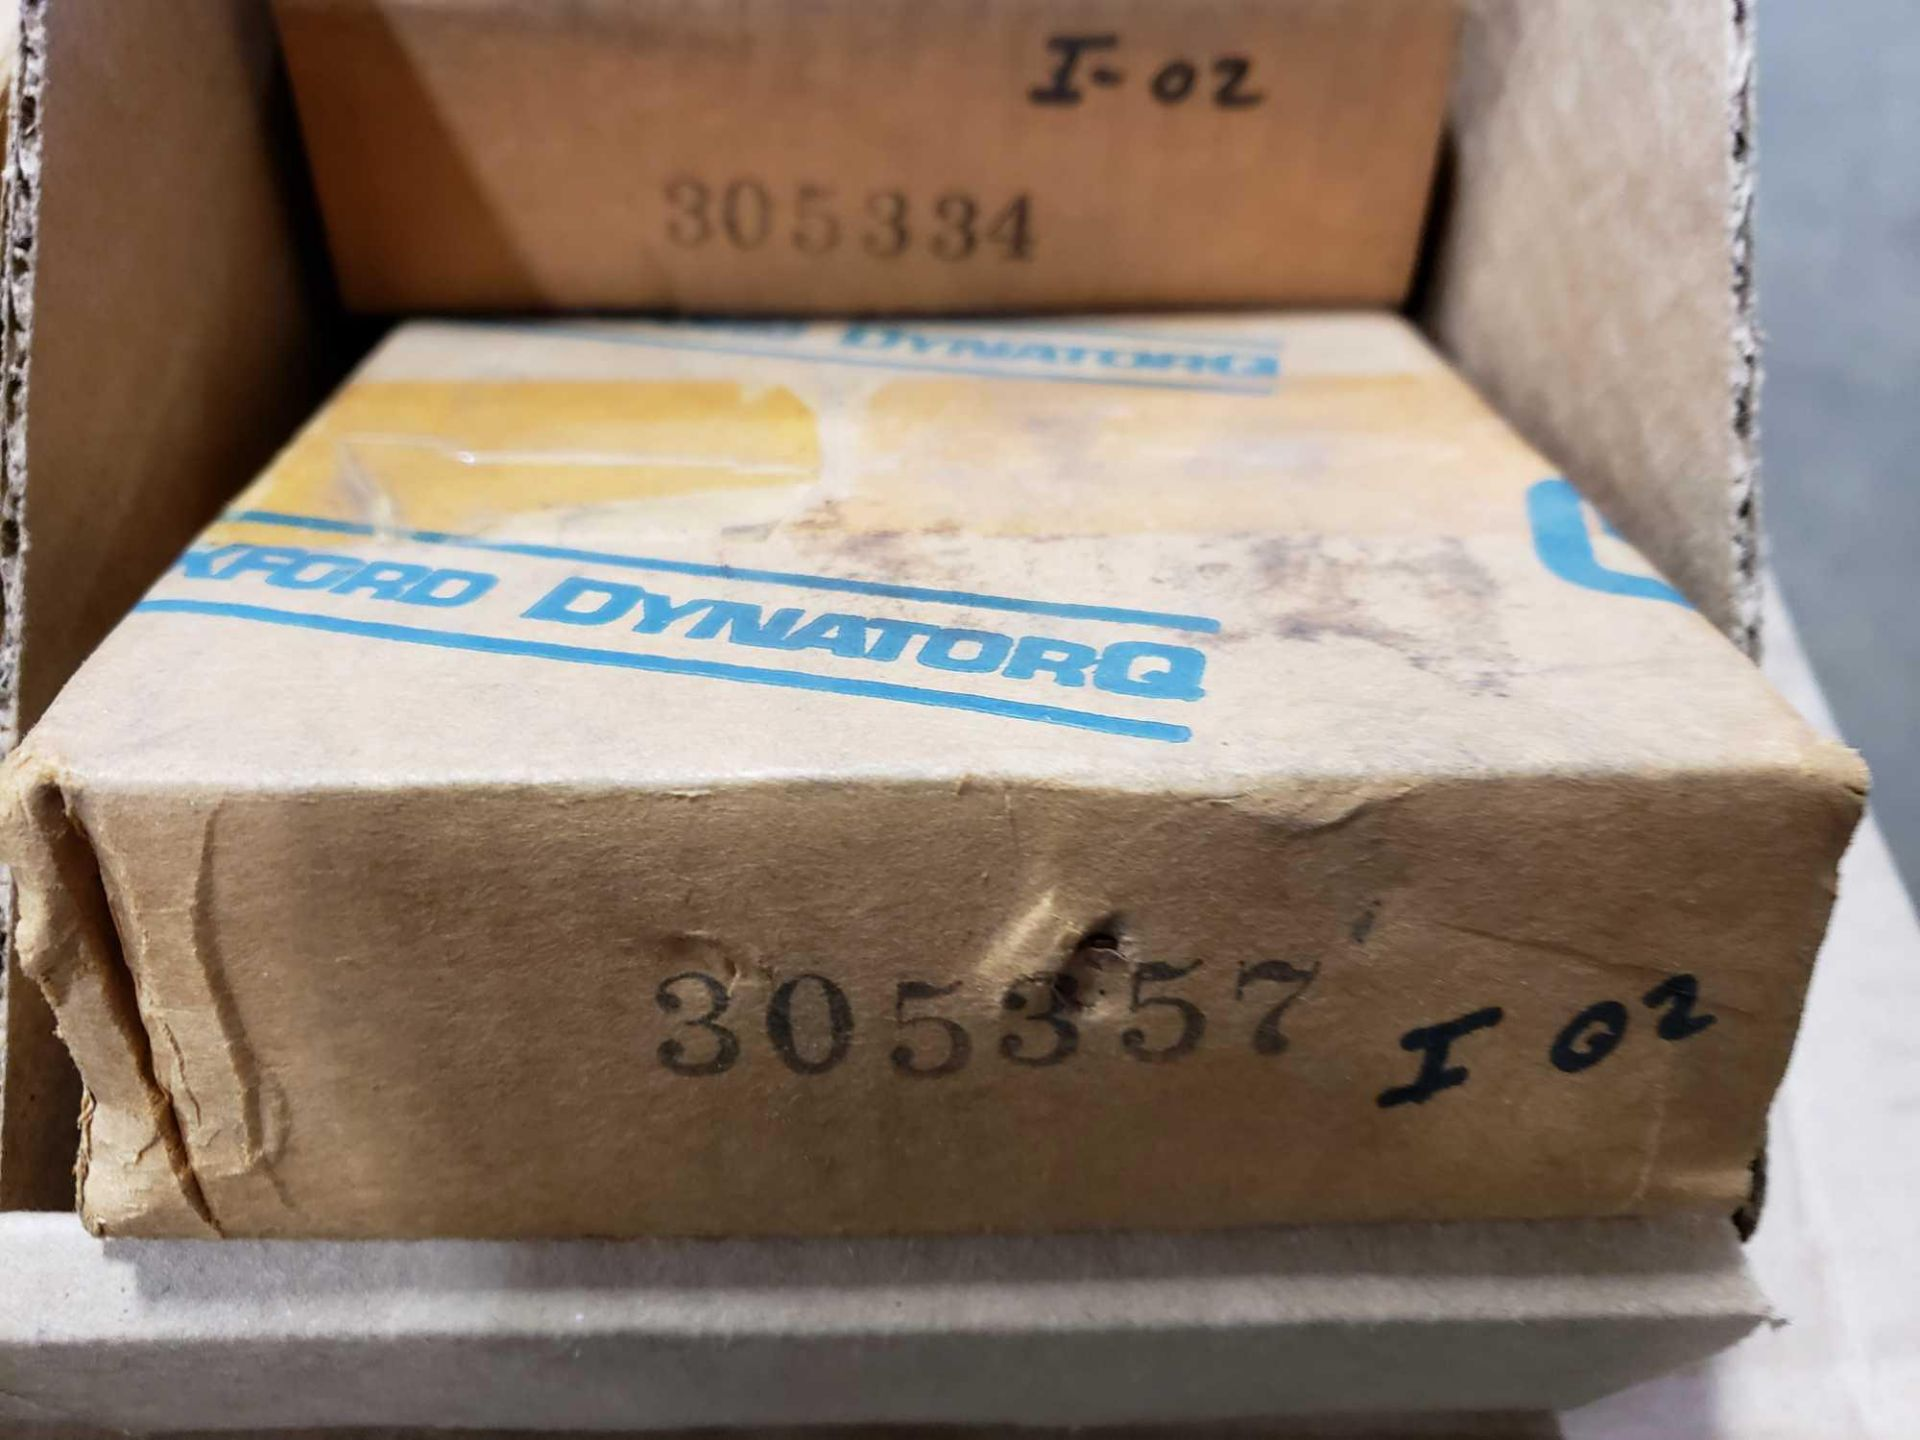 Lot 21 - Qty 2 - Dynatorq parts as pictured. New in box.